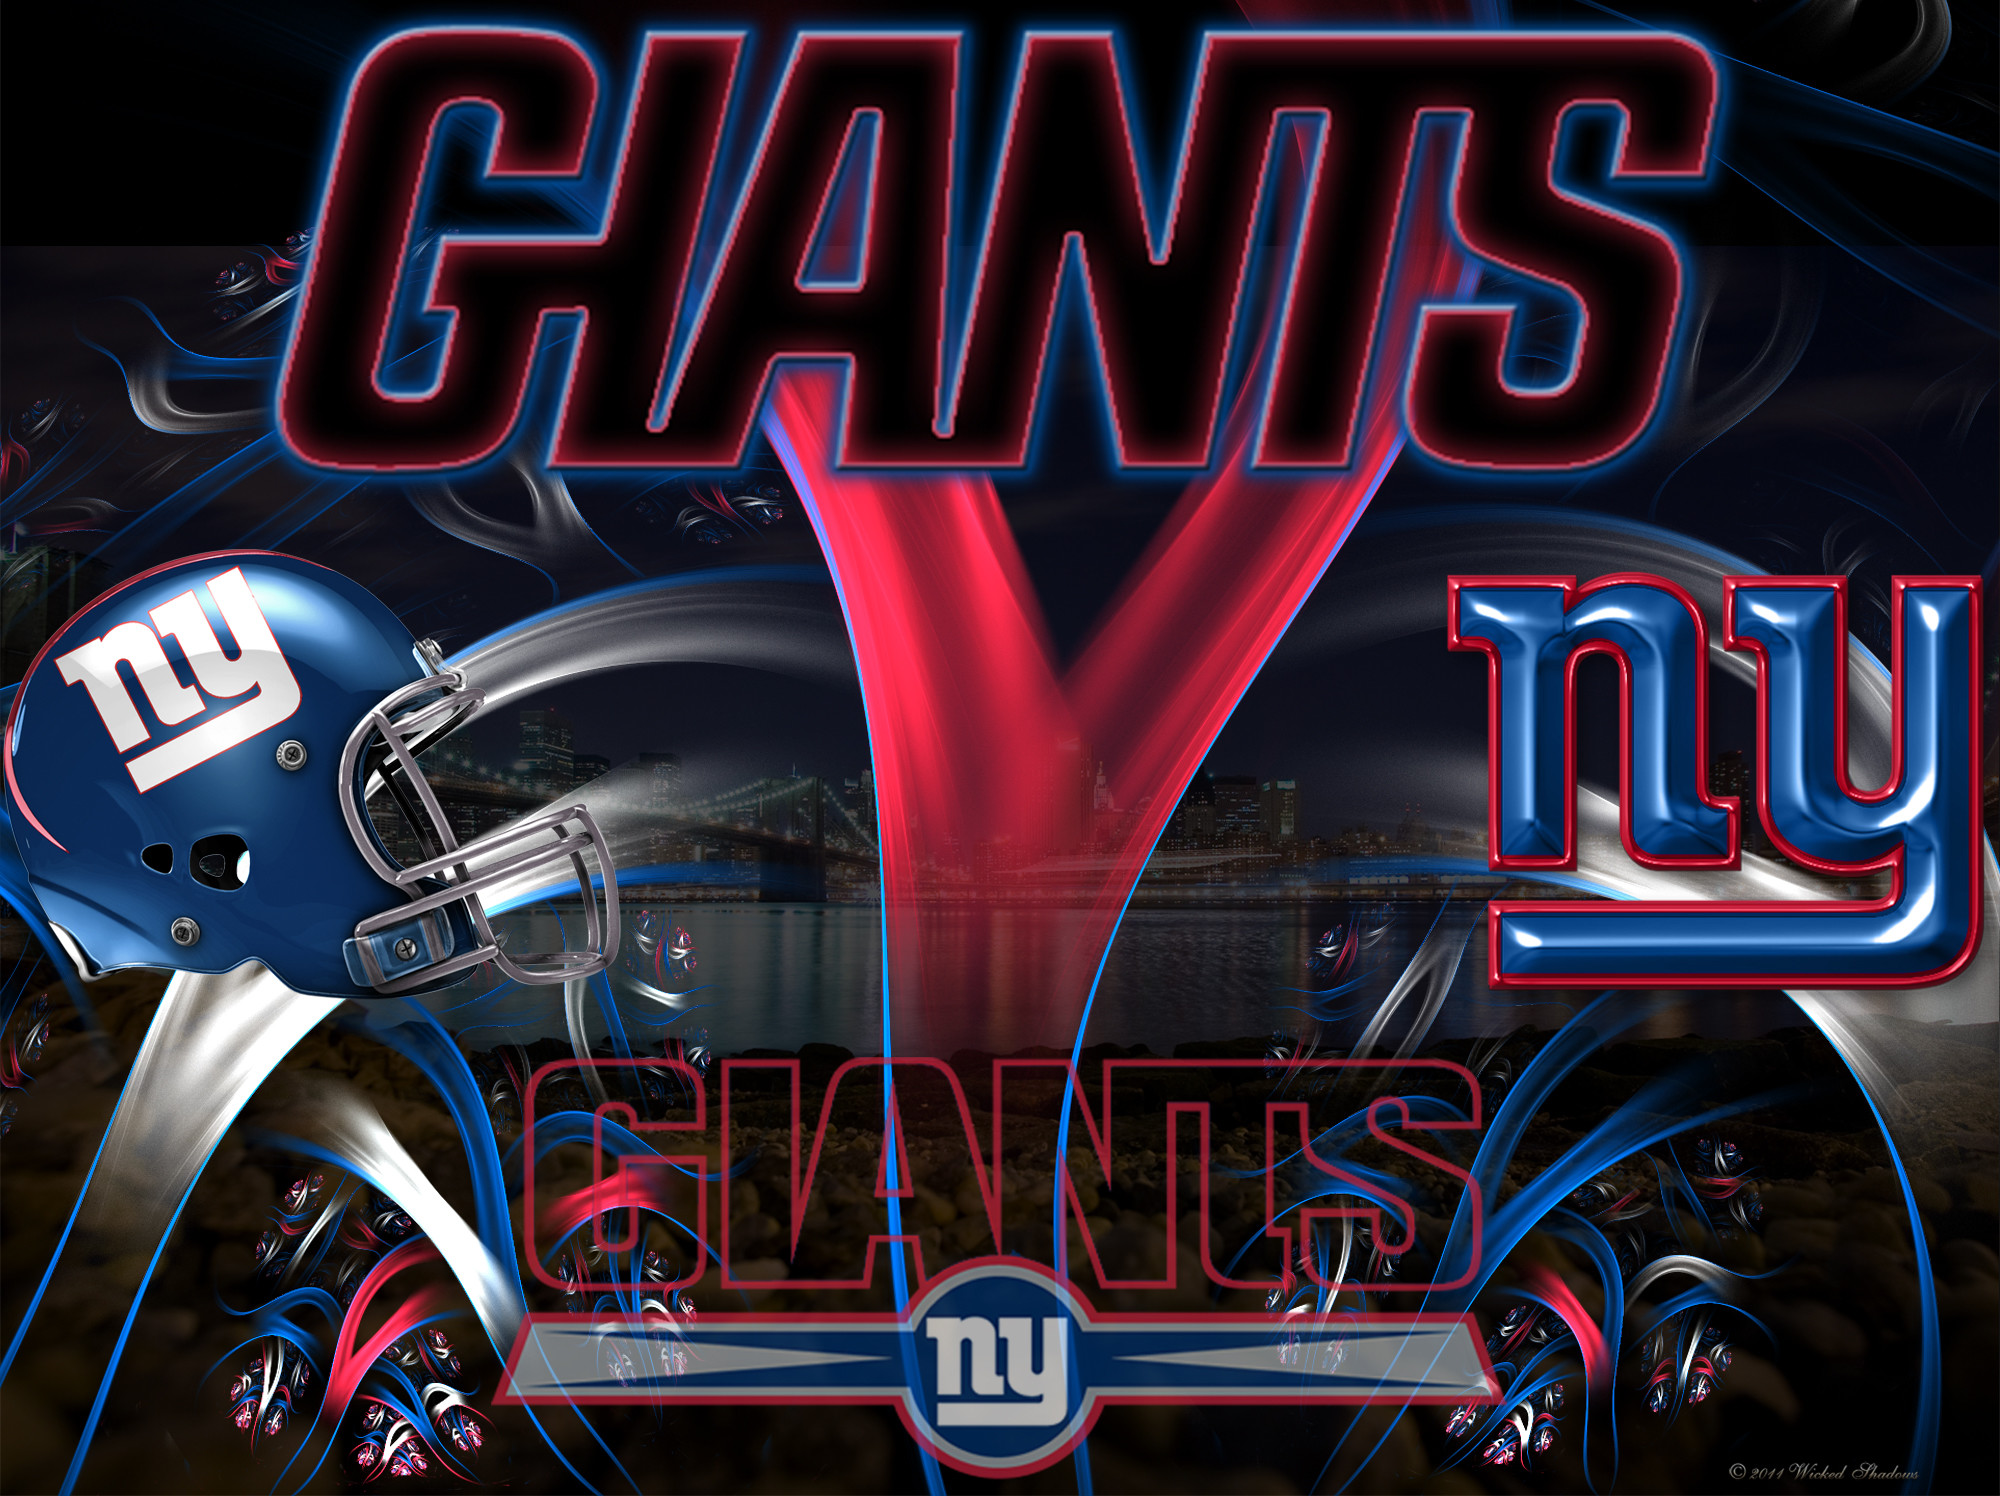 2000x1496 Free New York Giants wallpaper | New York Giants wallpapers